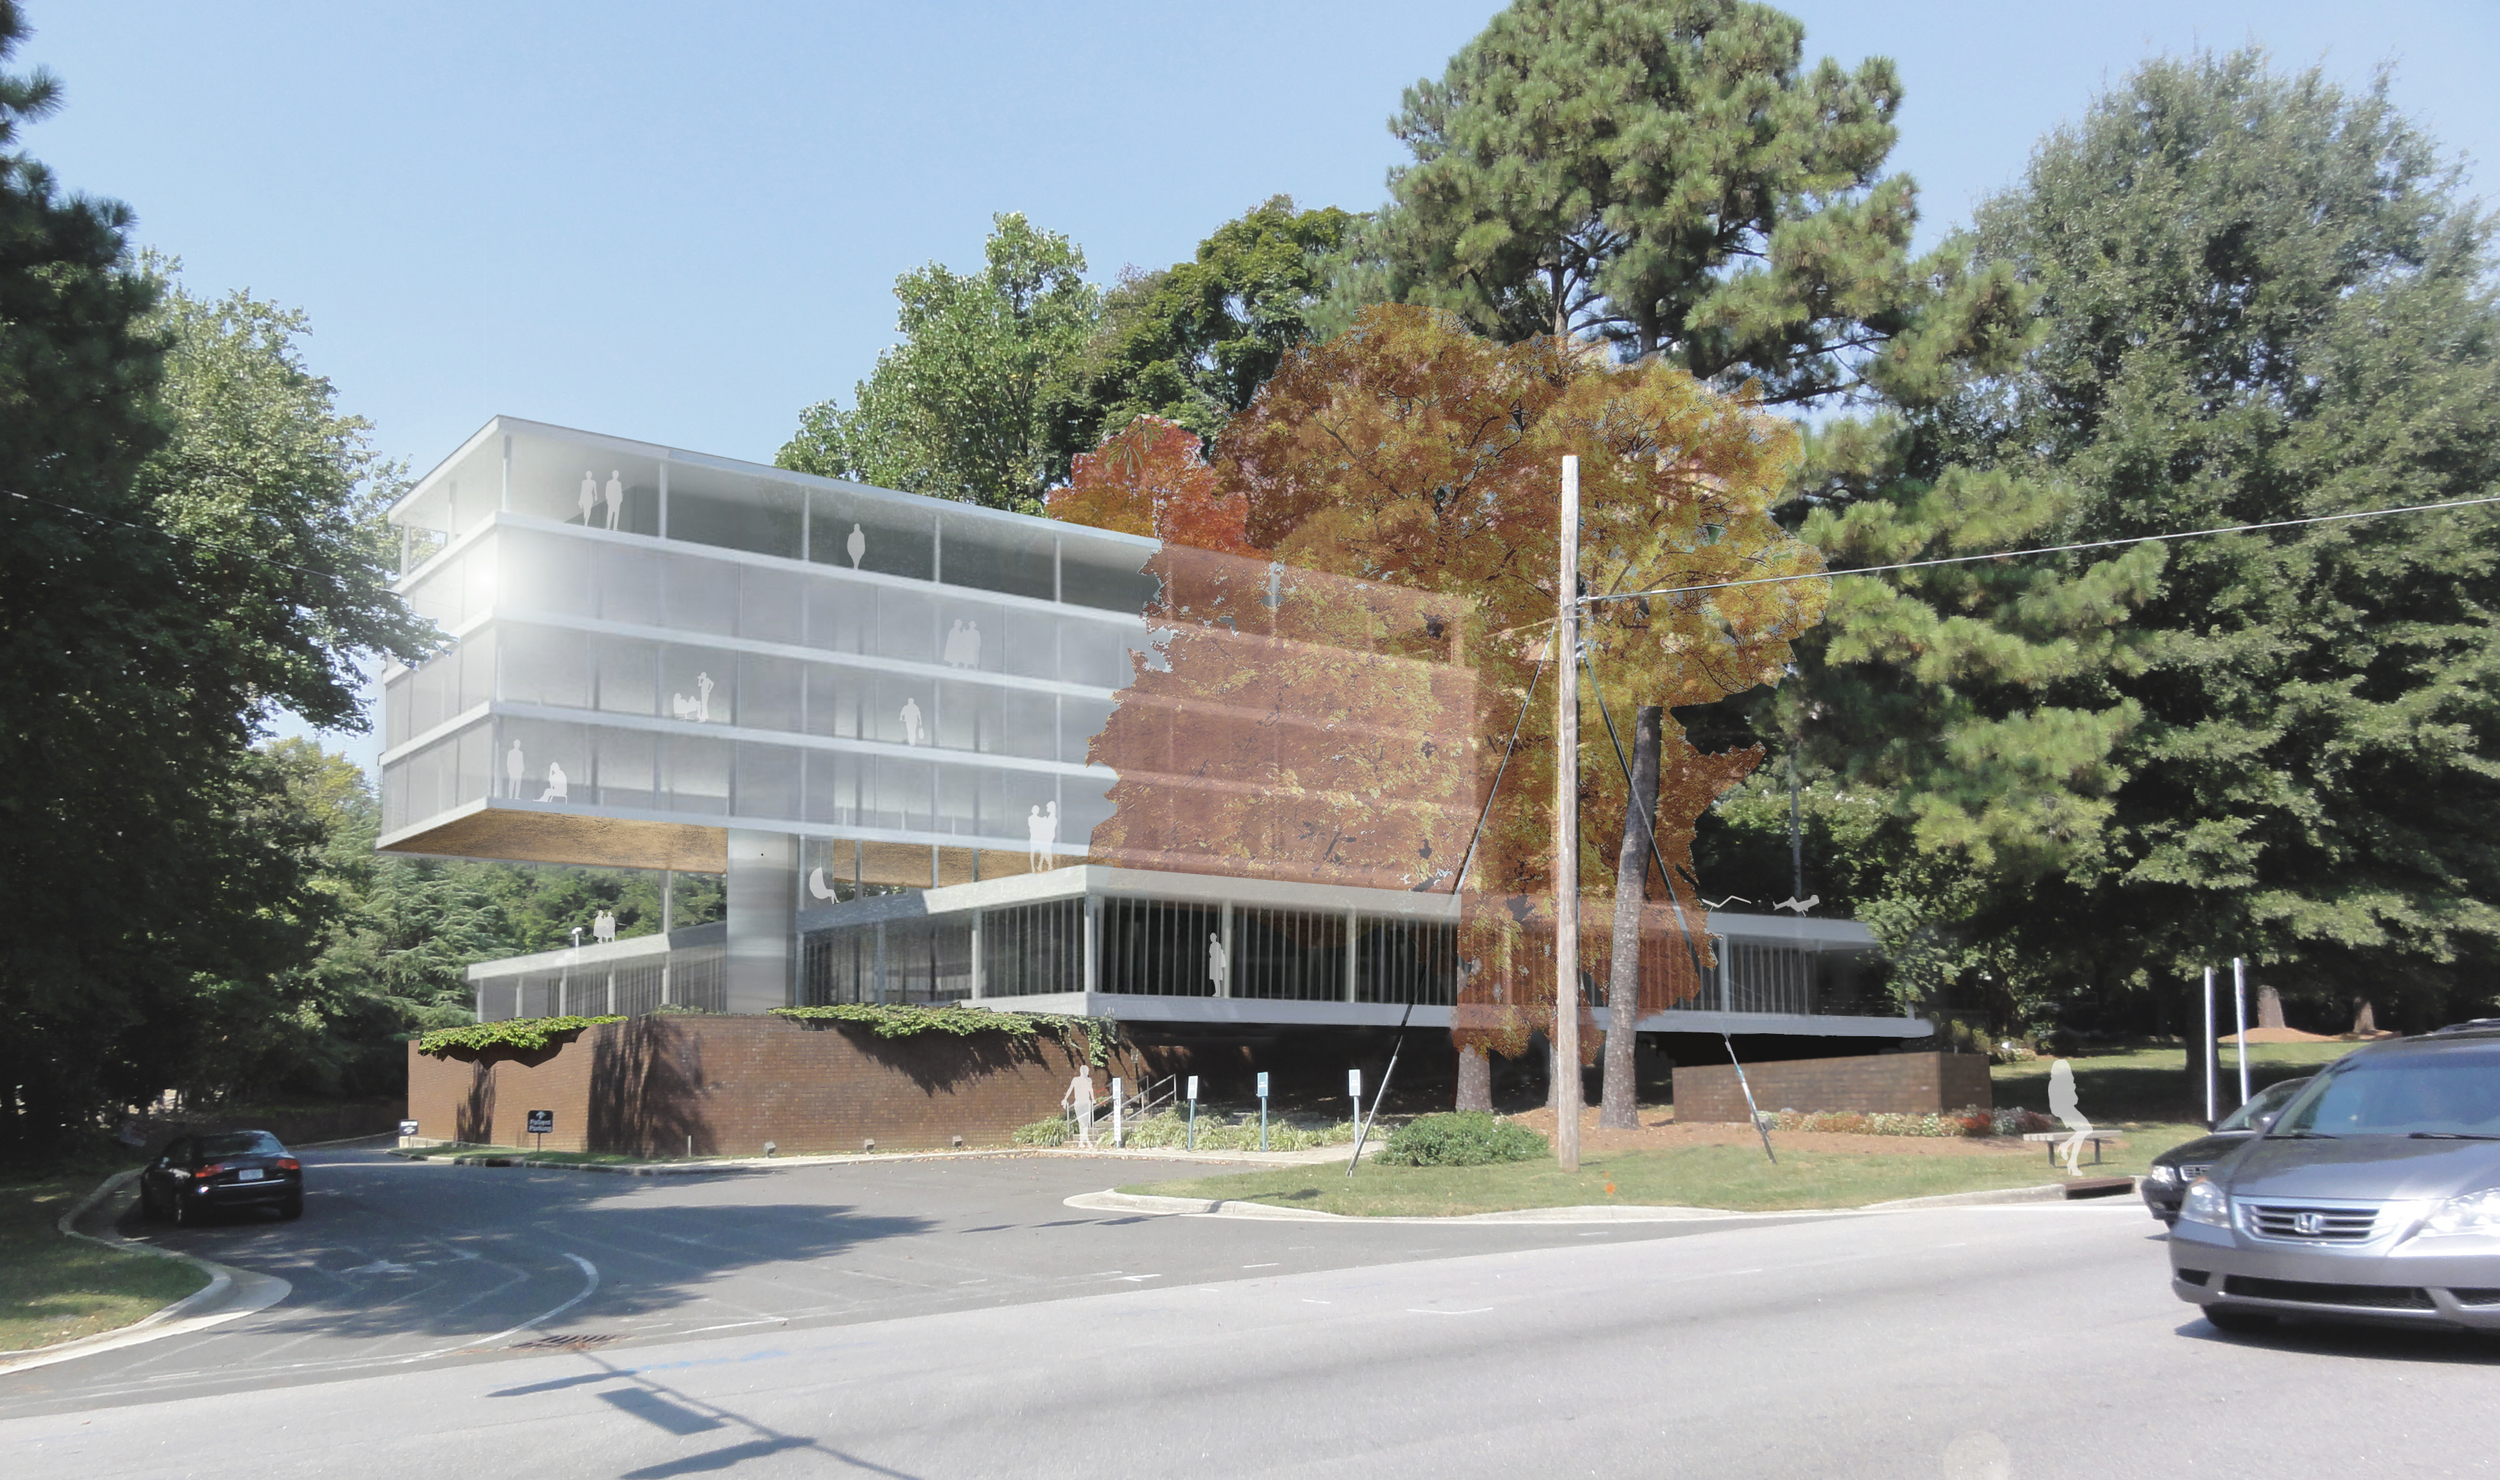 3515 Glenwood   Raleigh, North Carolina   Architect:  HA    Program:   Refurbishment of an existing 35,000sf (3,500m2) office building, with an additional 35,000sf (3,500m2) new construction of office space on top of the existing building. The plan sought to create an interior courtyard in the existing building with a new roof garden, also on the existing structure.   Client:   Withheld